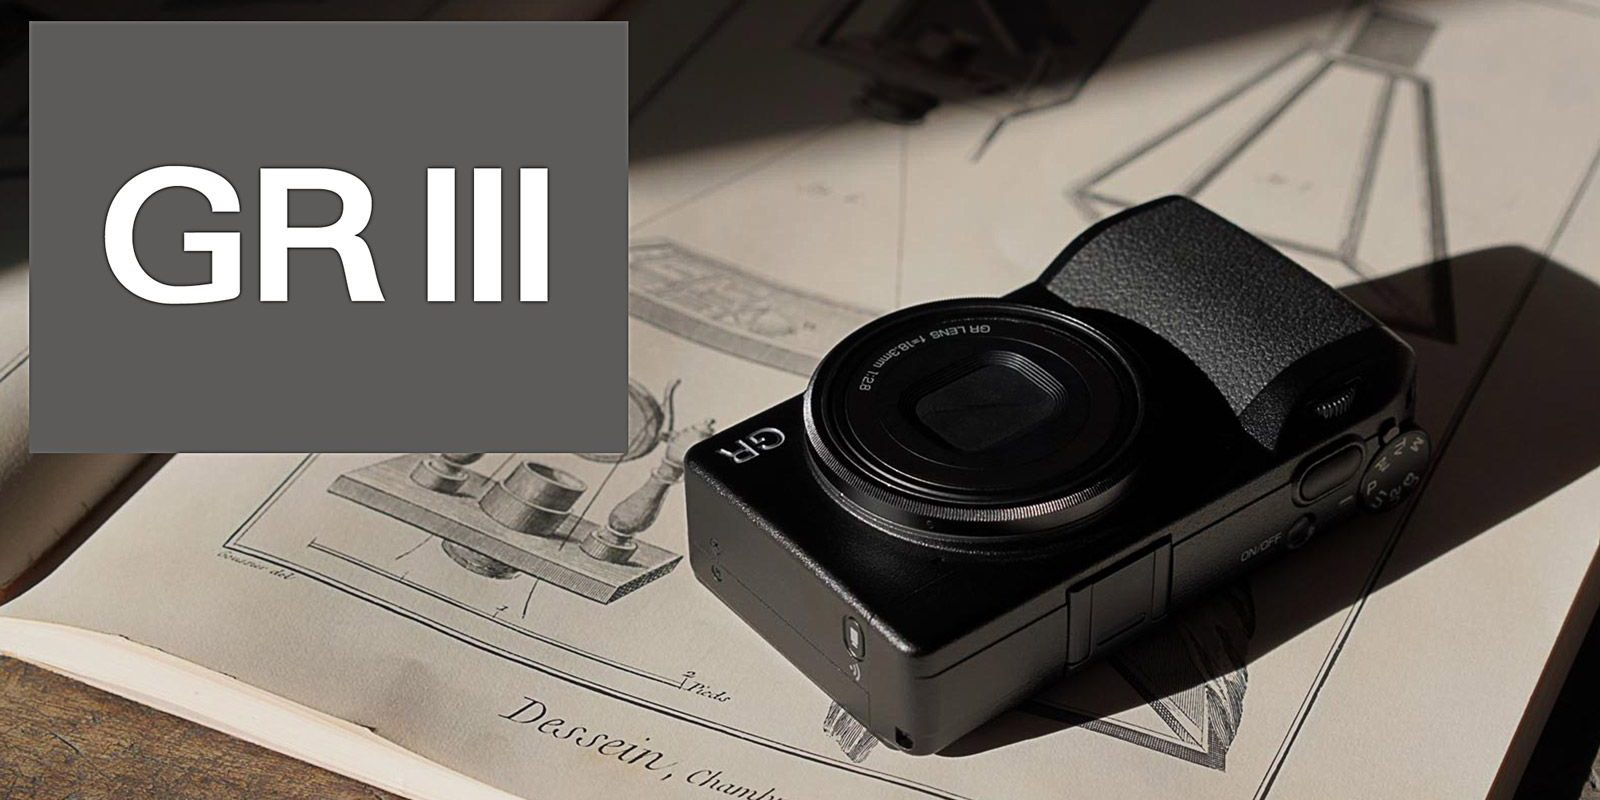 Ricoh GR III announced - a new generation legendary camera for